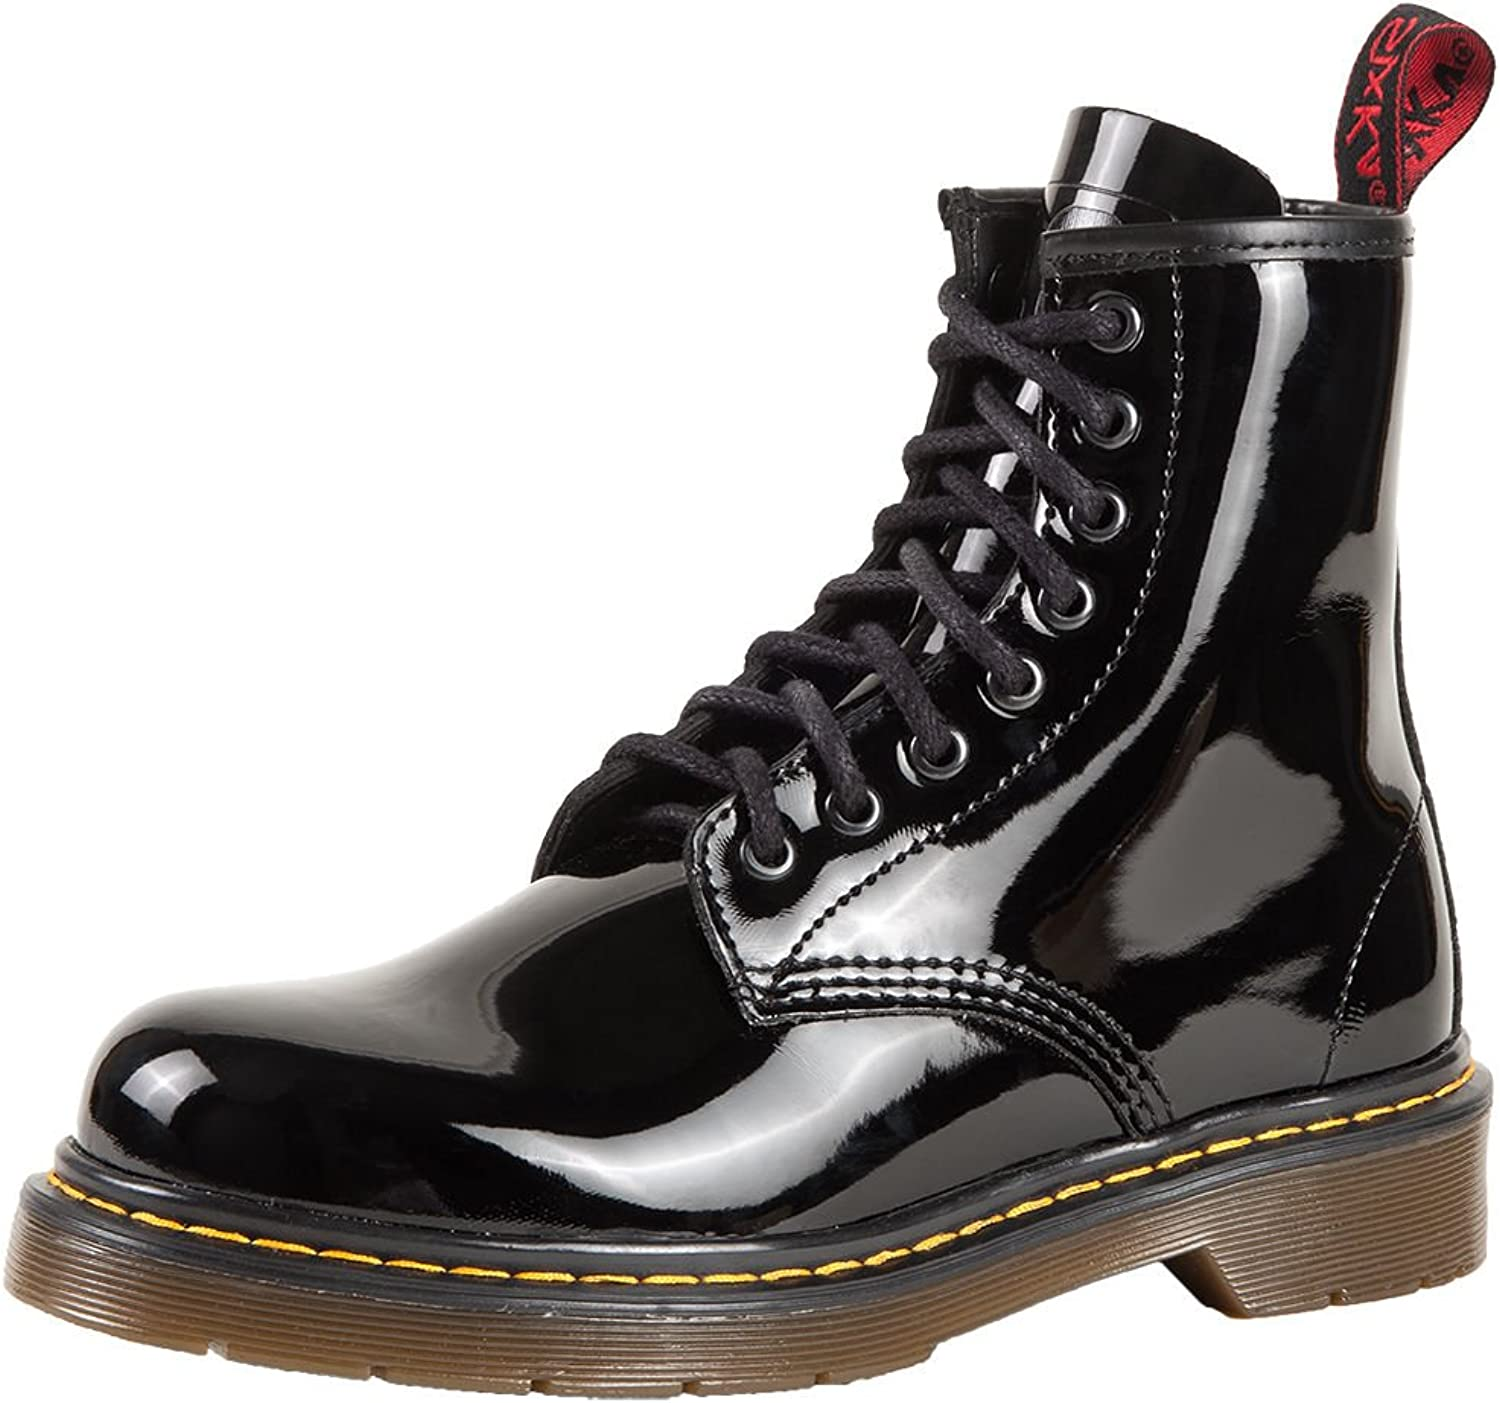 SK7 Women's Hot Stylish Coventry Gloss Leather Fashion Ankle Boots Piano Black - 9